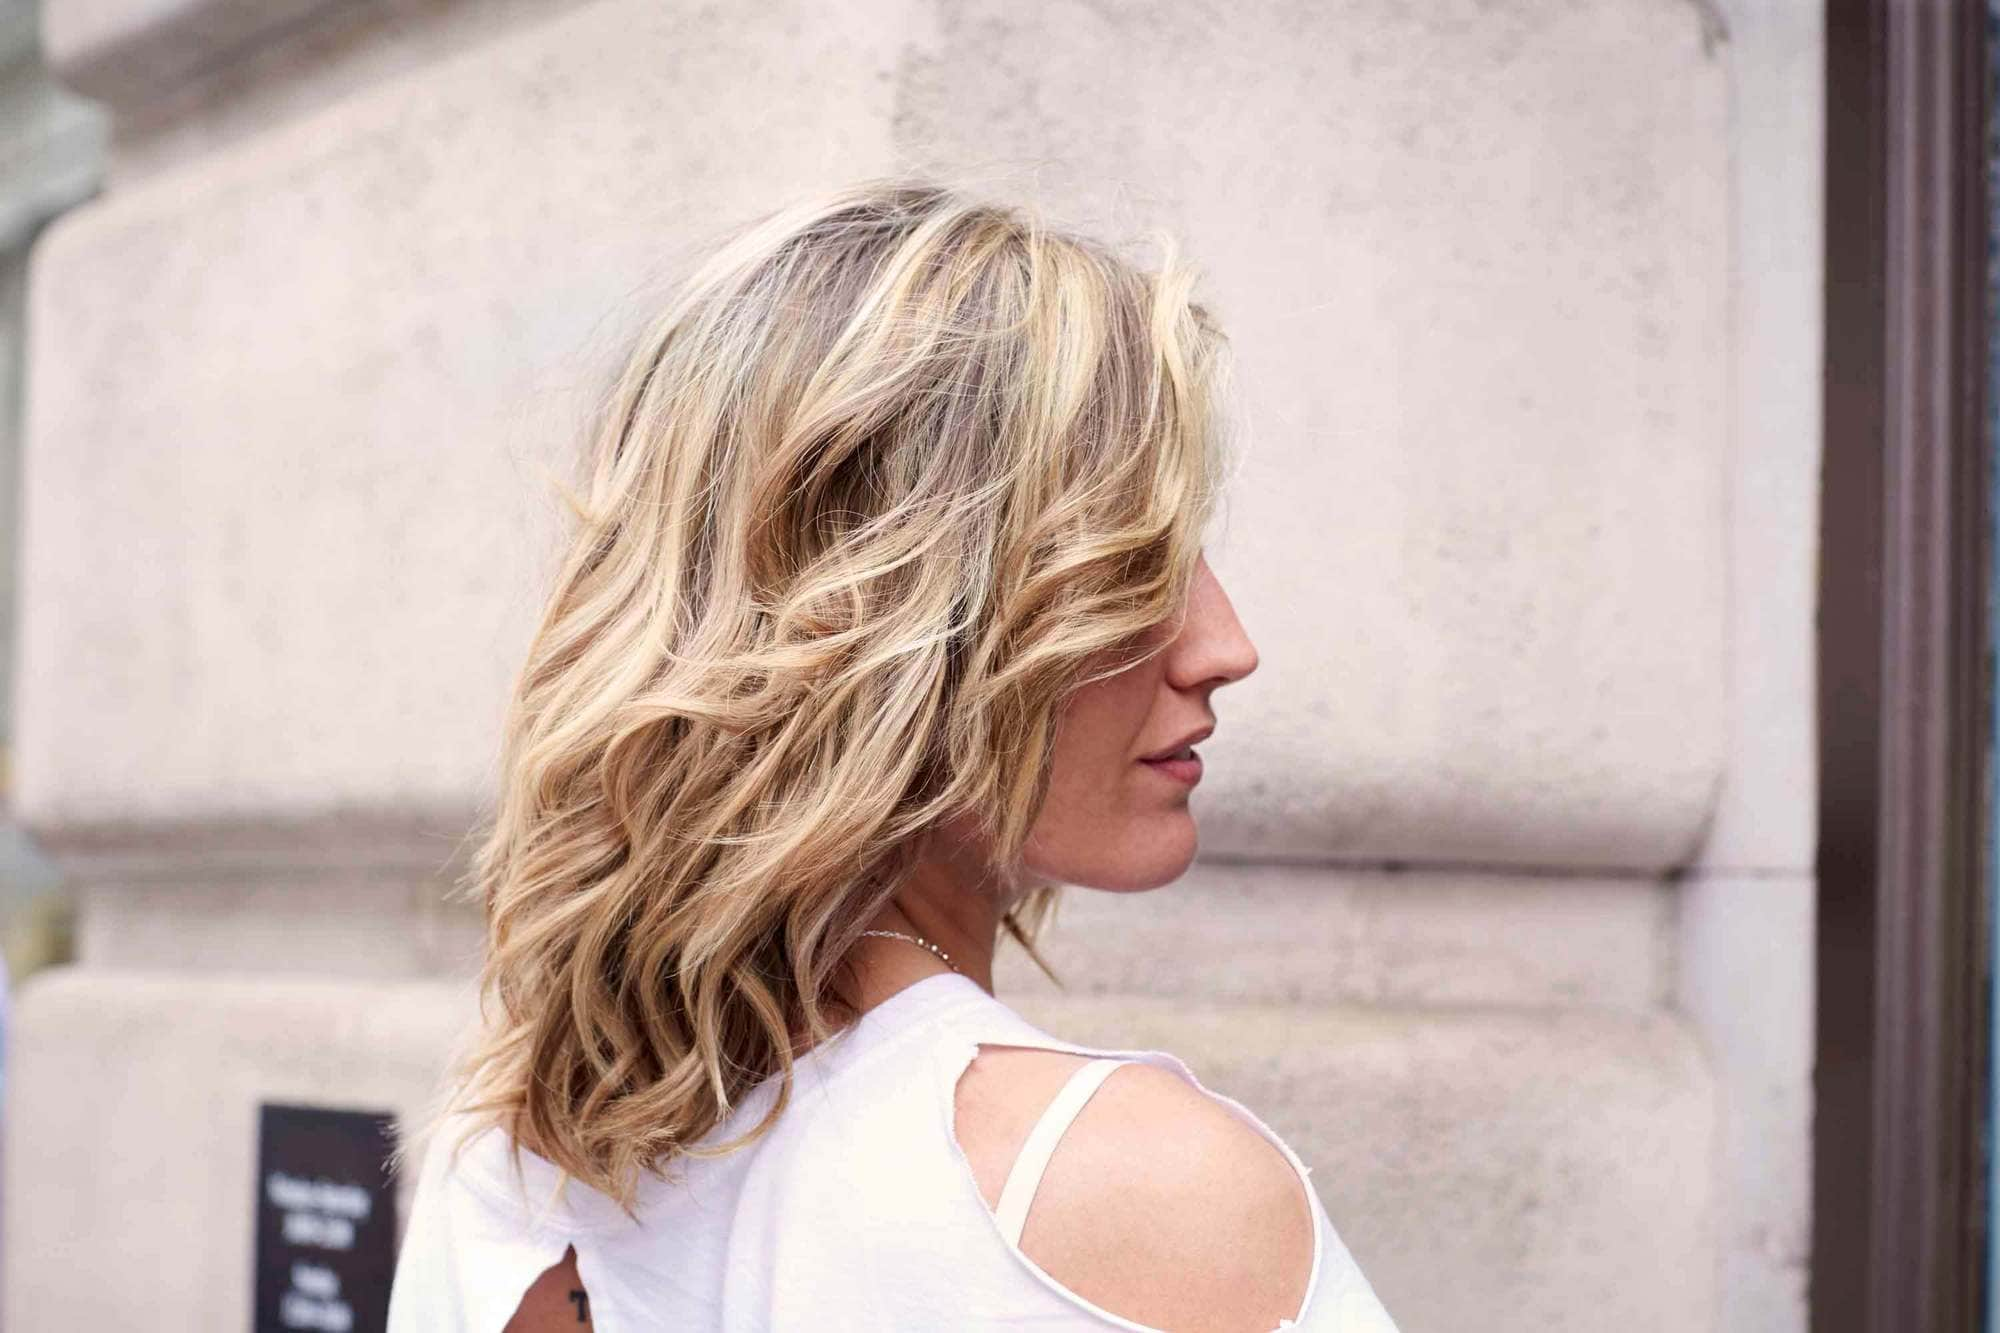 the best lowlights can help your blonde color look pop